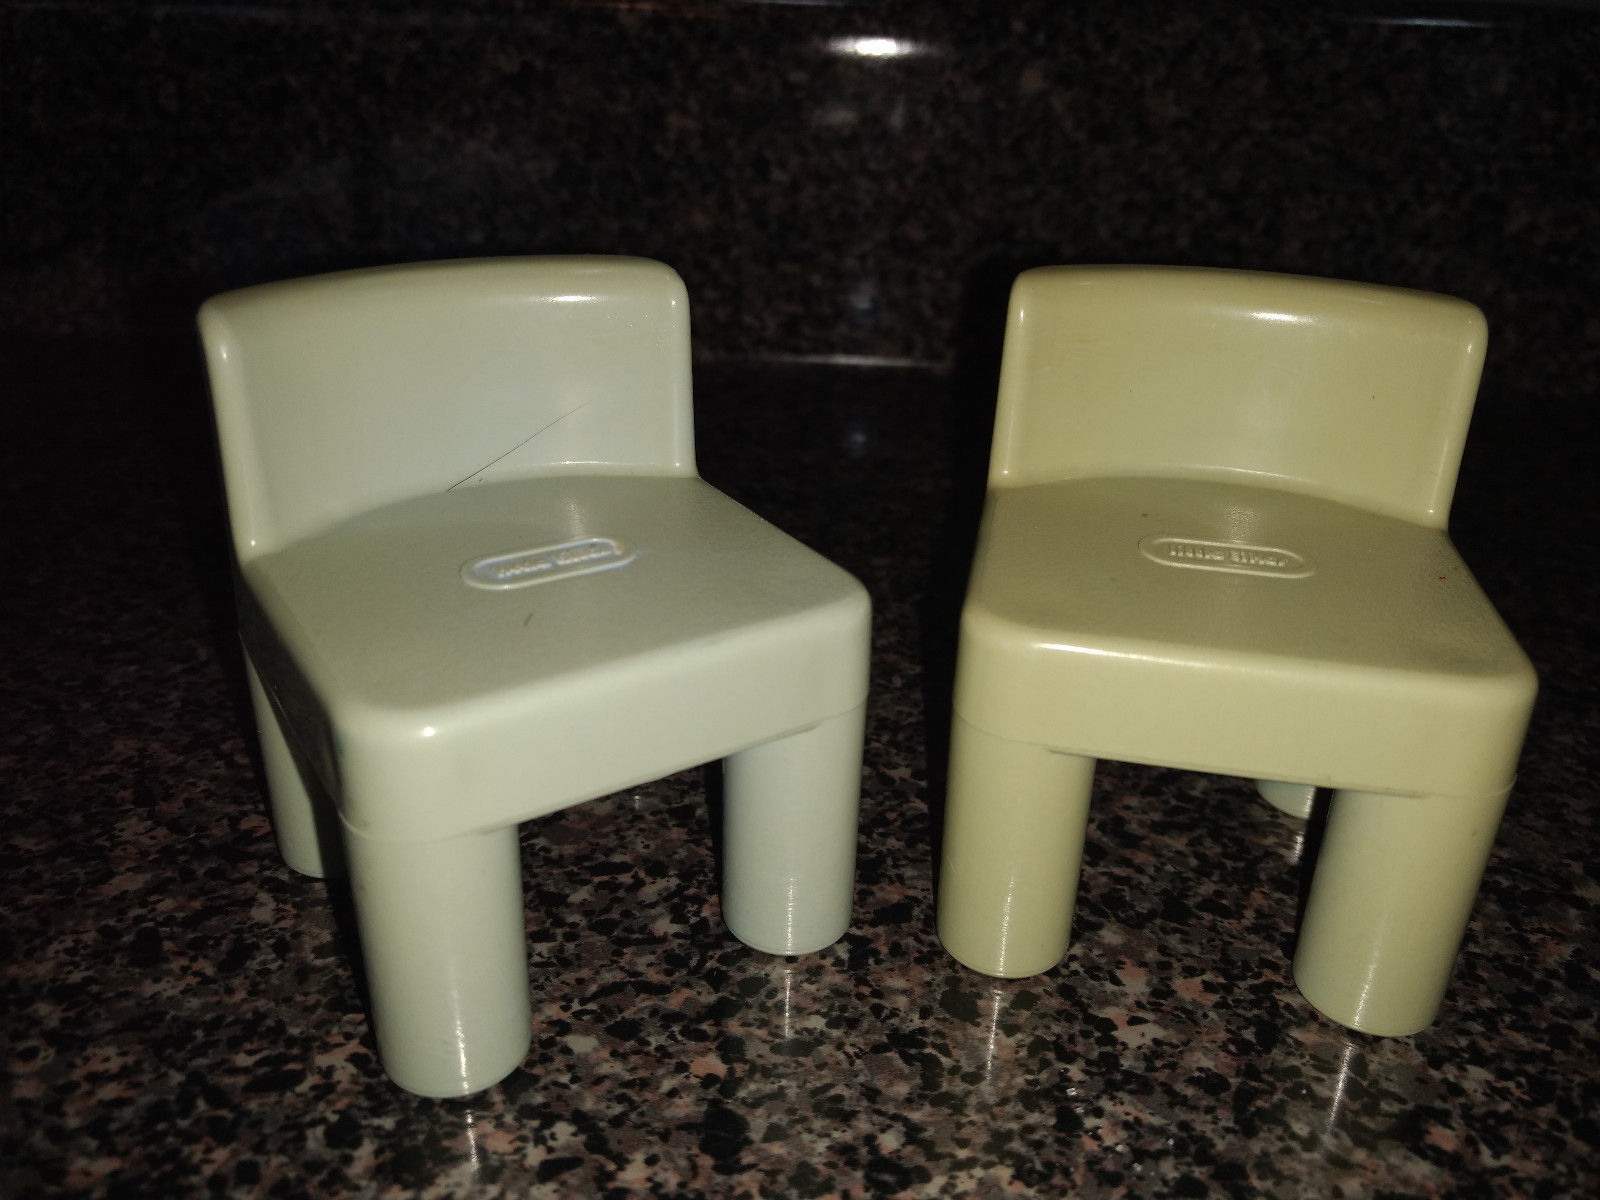 Vintage Little Tikes Blue-Green Chairs Dollhouse Furniture Toy #2, #6 Set of 2